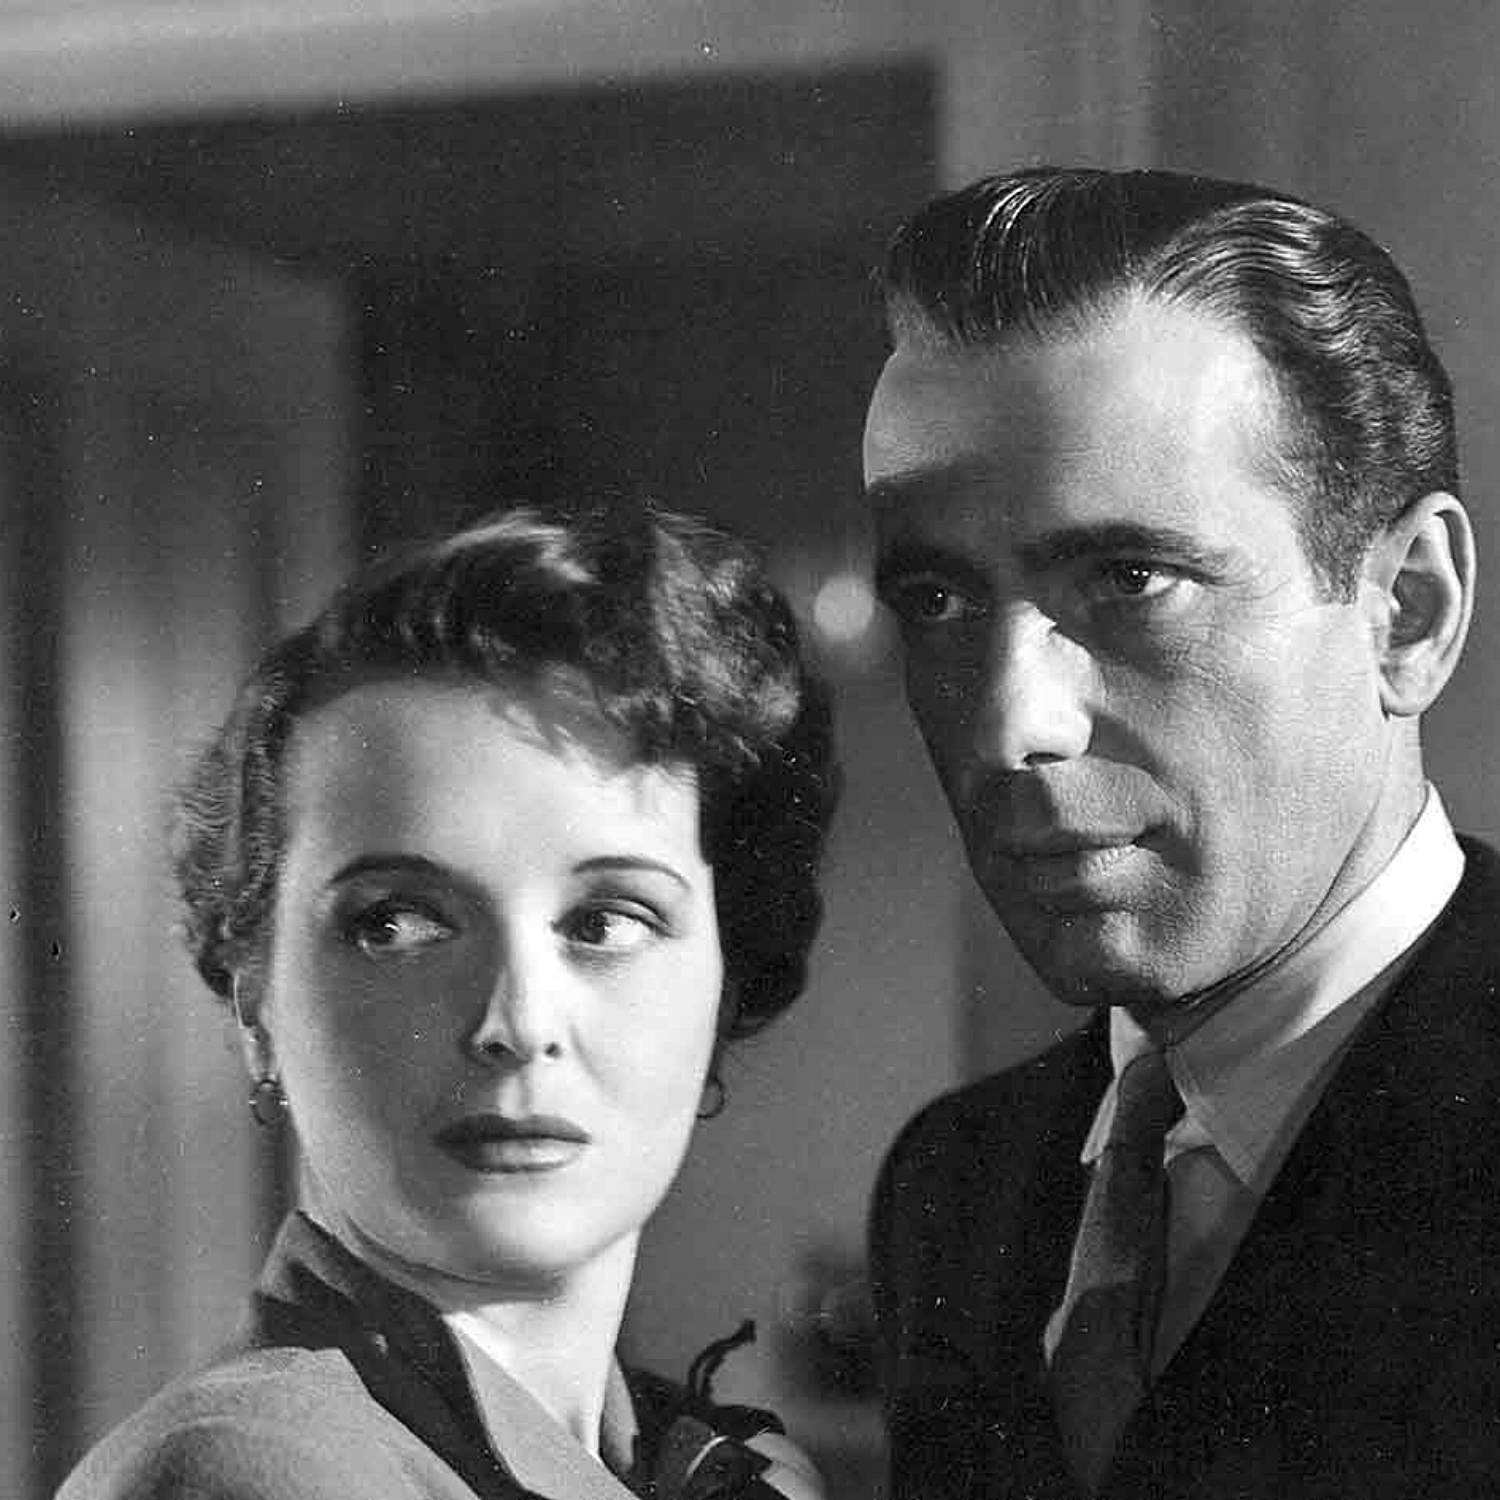 THE MALTESE FALCON - SUNDAY | JANUARY 13, 2019 | 5:00PMFEMME FATALEs of FILM NOIR